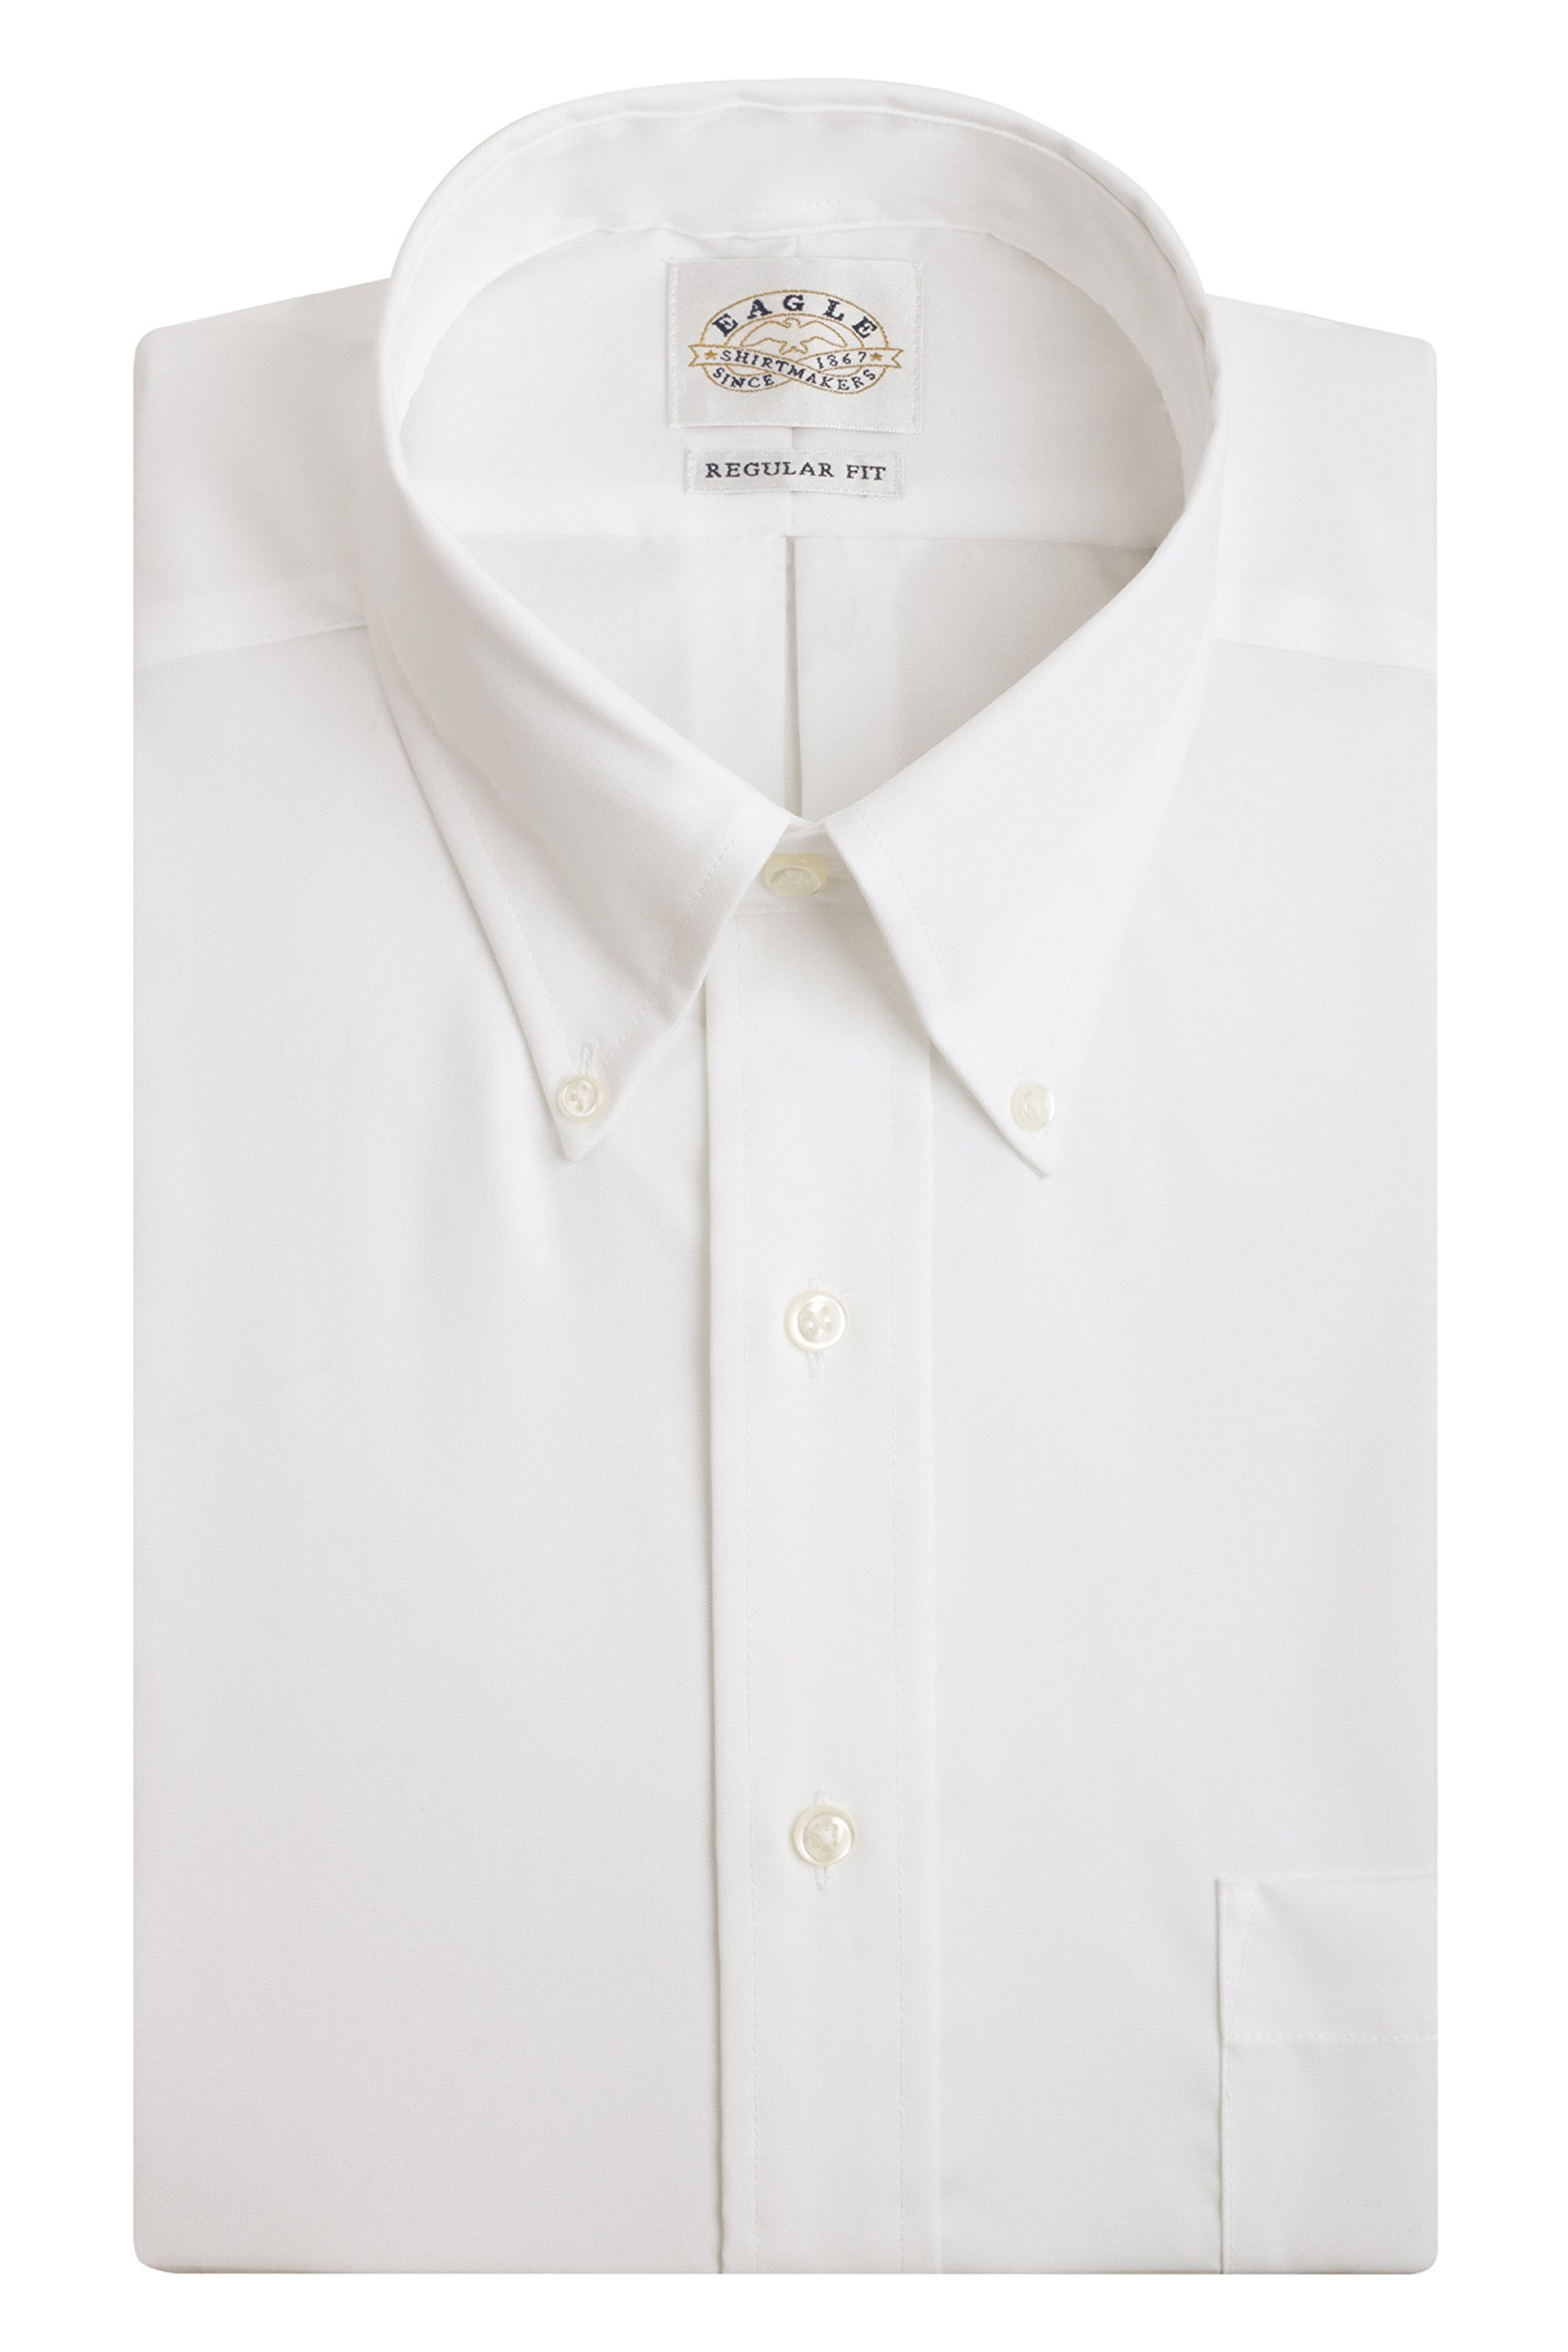 Eagle Men's Non Iron Regular Fit Solid Button Down Collar Dress Shirt, White, 16.5'' Neck 36''-37'' Sleeve